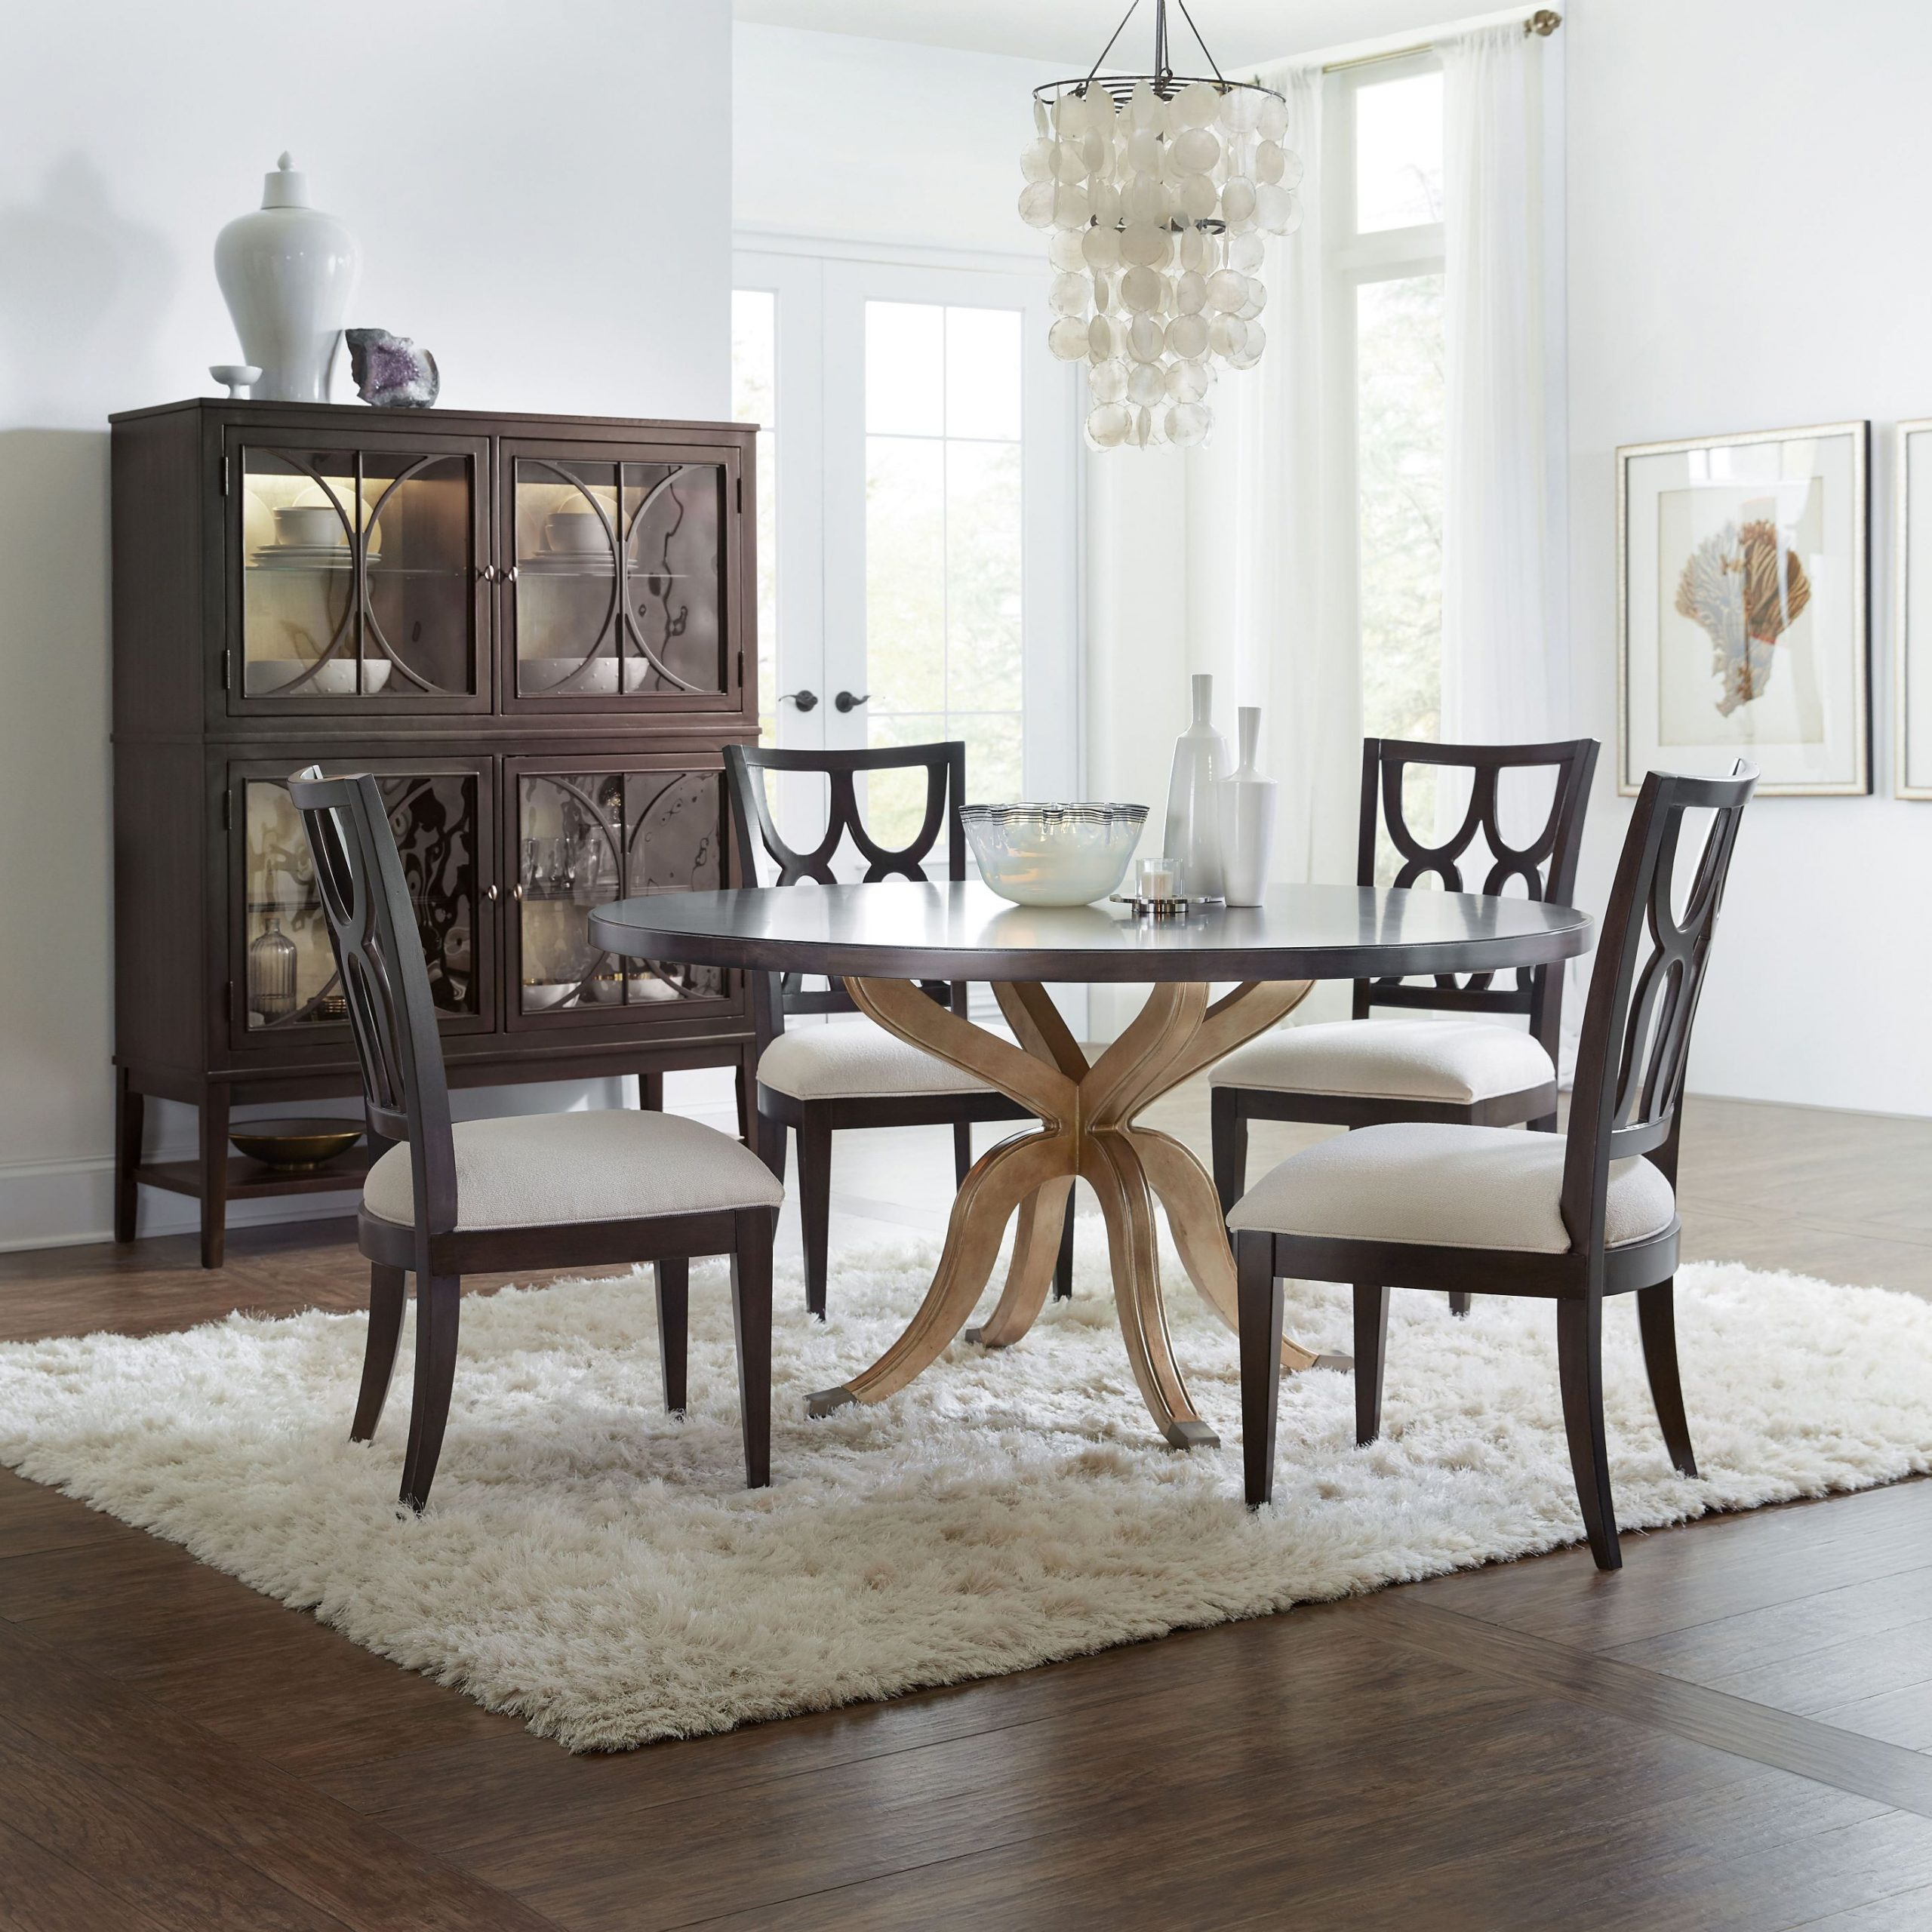 Curvee Gold Pedestal Dining Room Set In Most Popular Weathered Gray Owen Pedestal Extending Dining Tables (View 19 of 25)